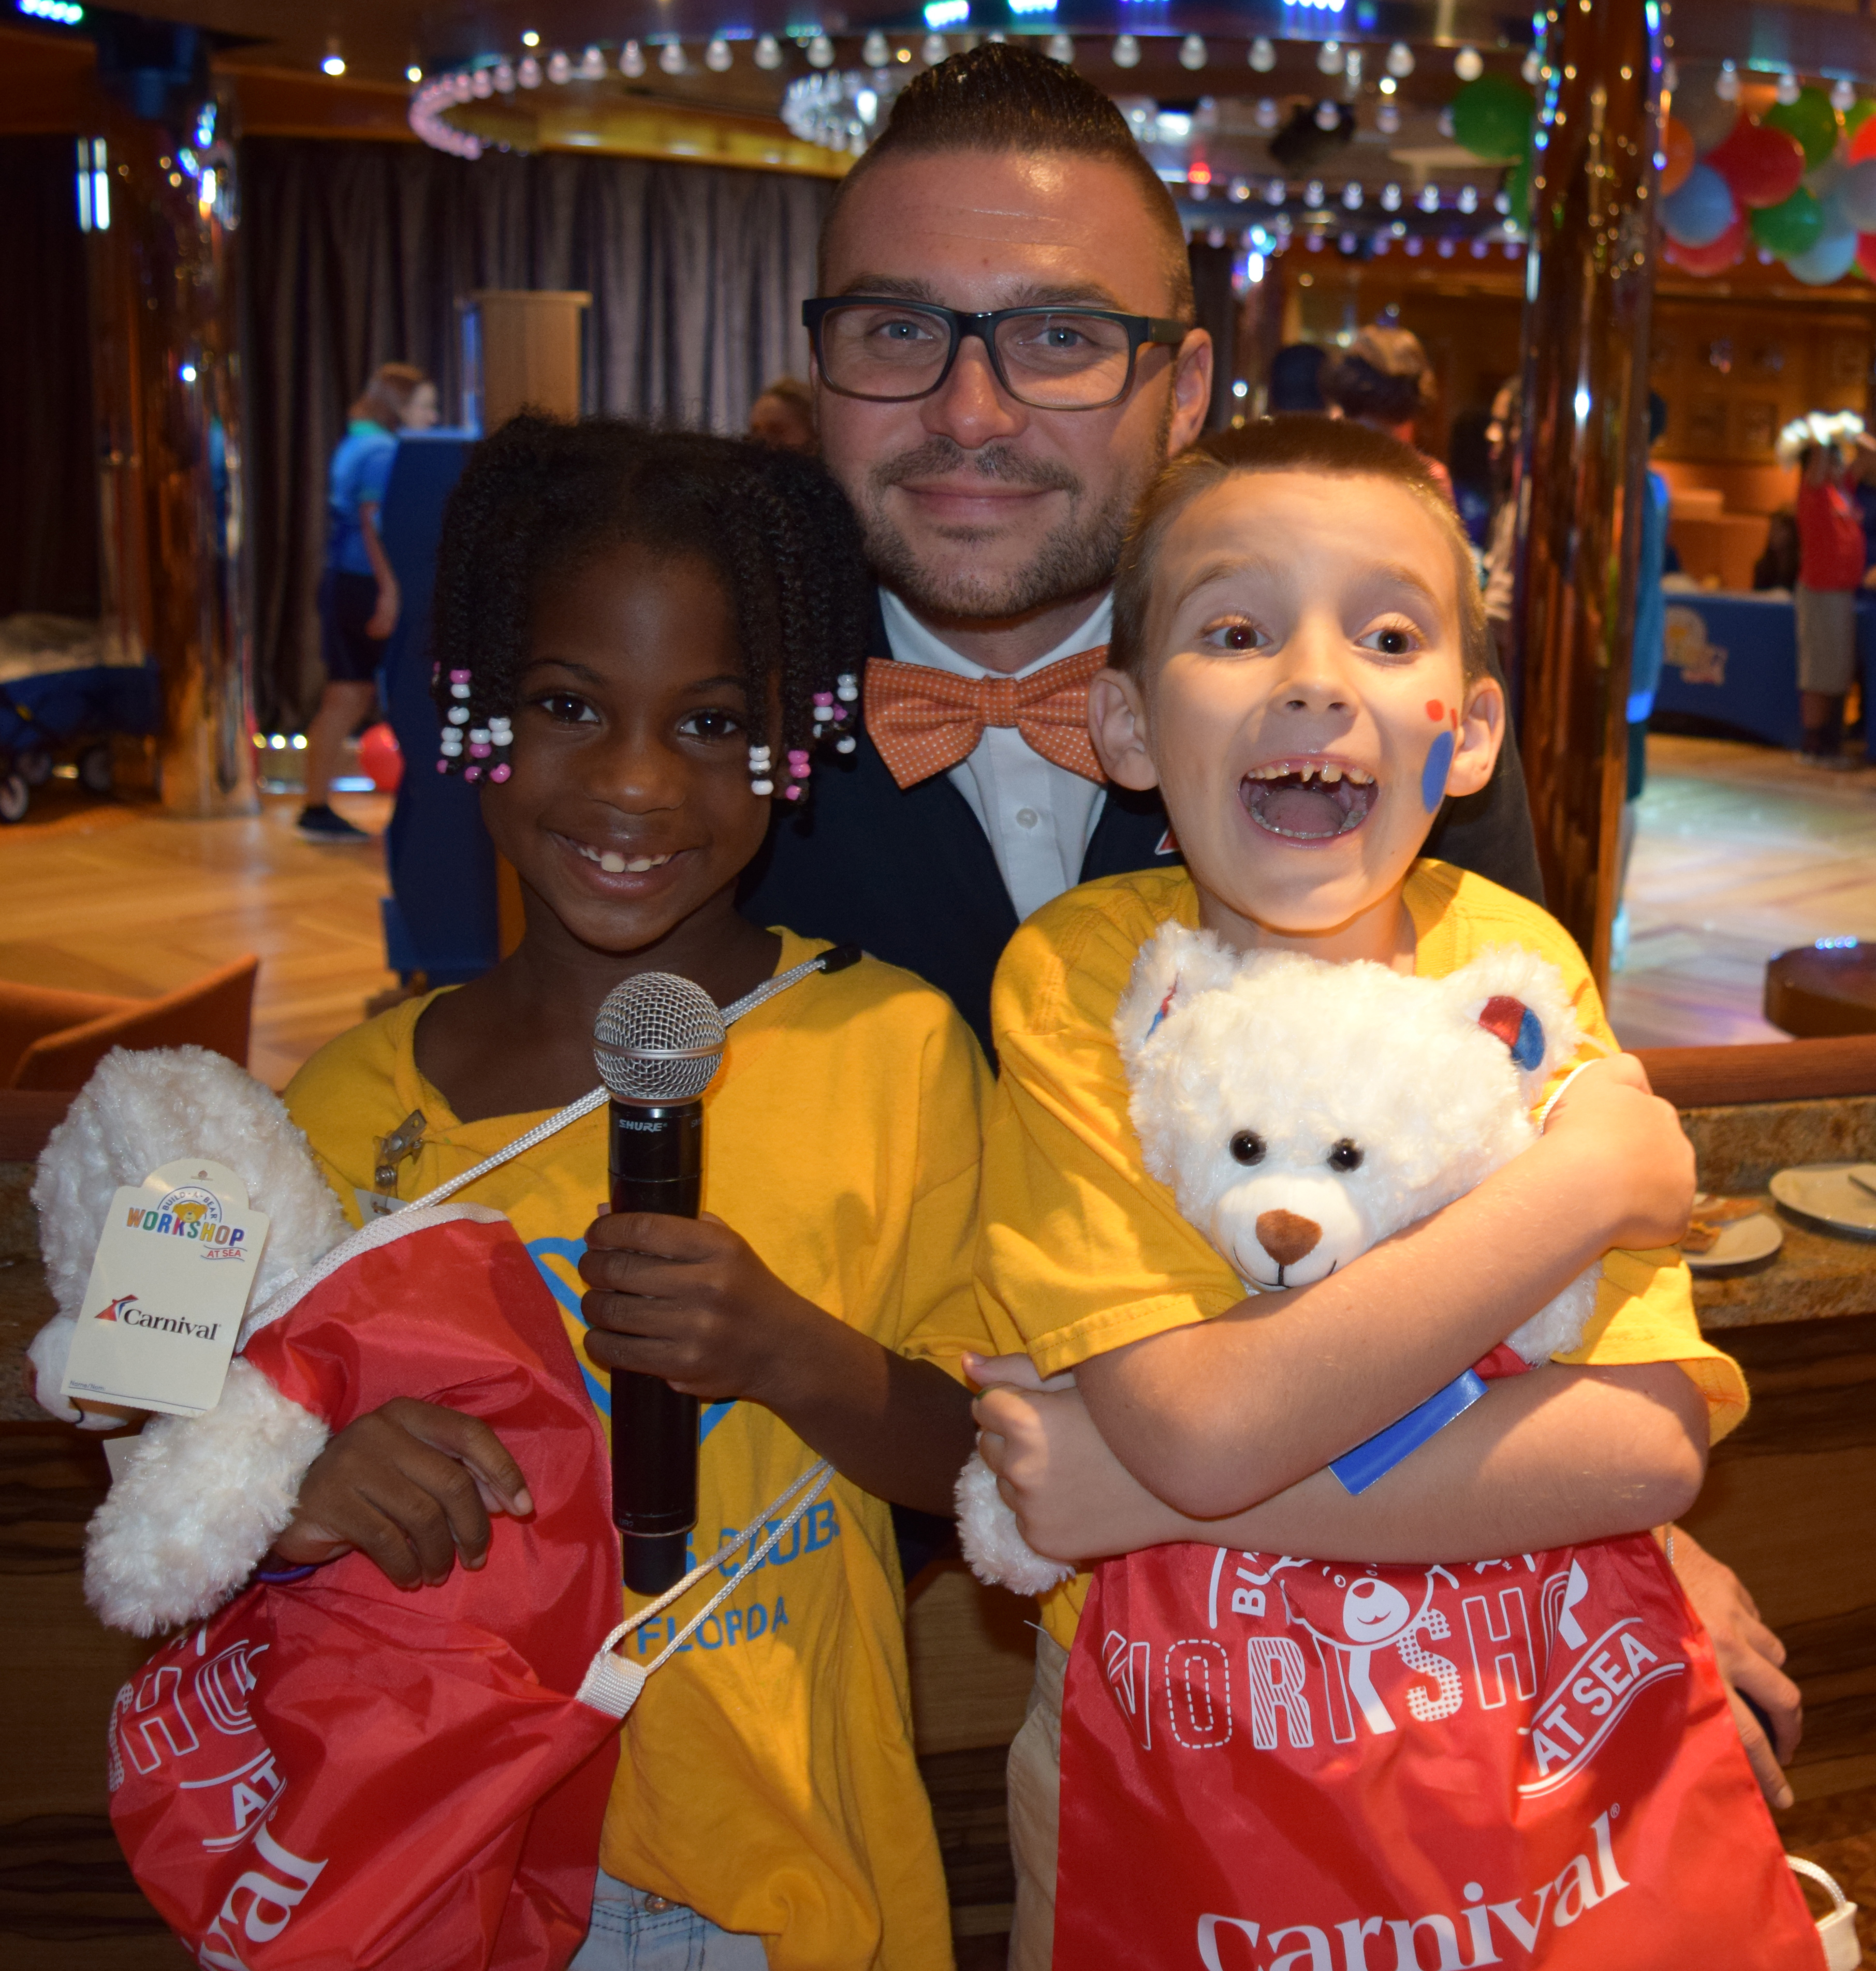 Carnival Cruise Line Hosts Build-A-Bear Day of Fun For 100 Kids from Boys & Girls Club Aboard Carnival Magic in Port Carnival